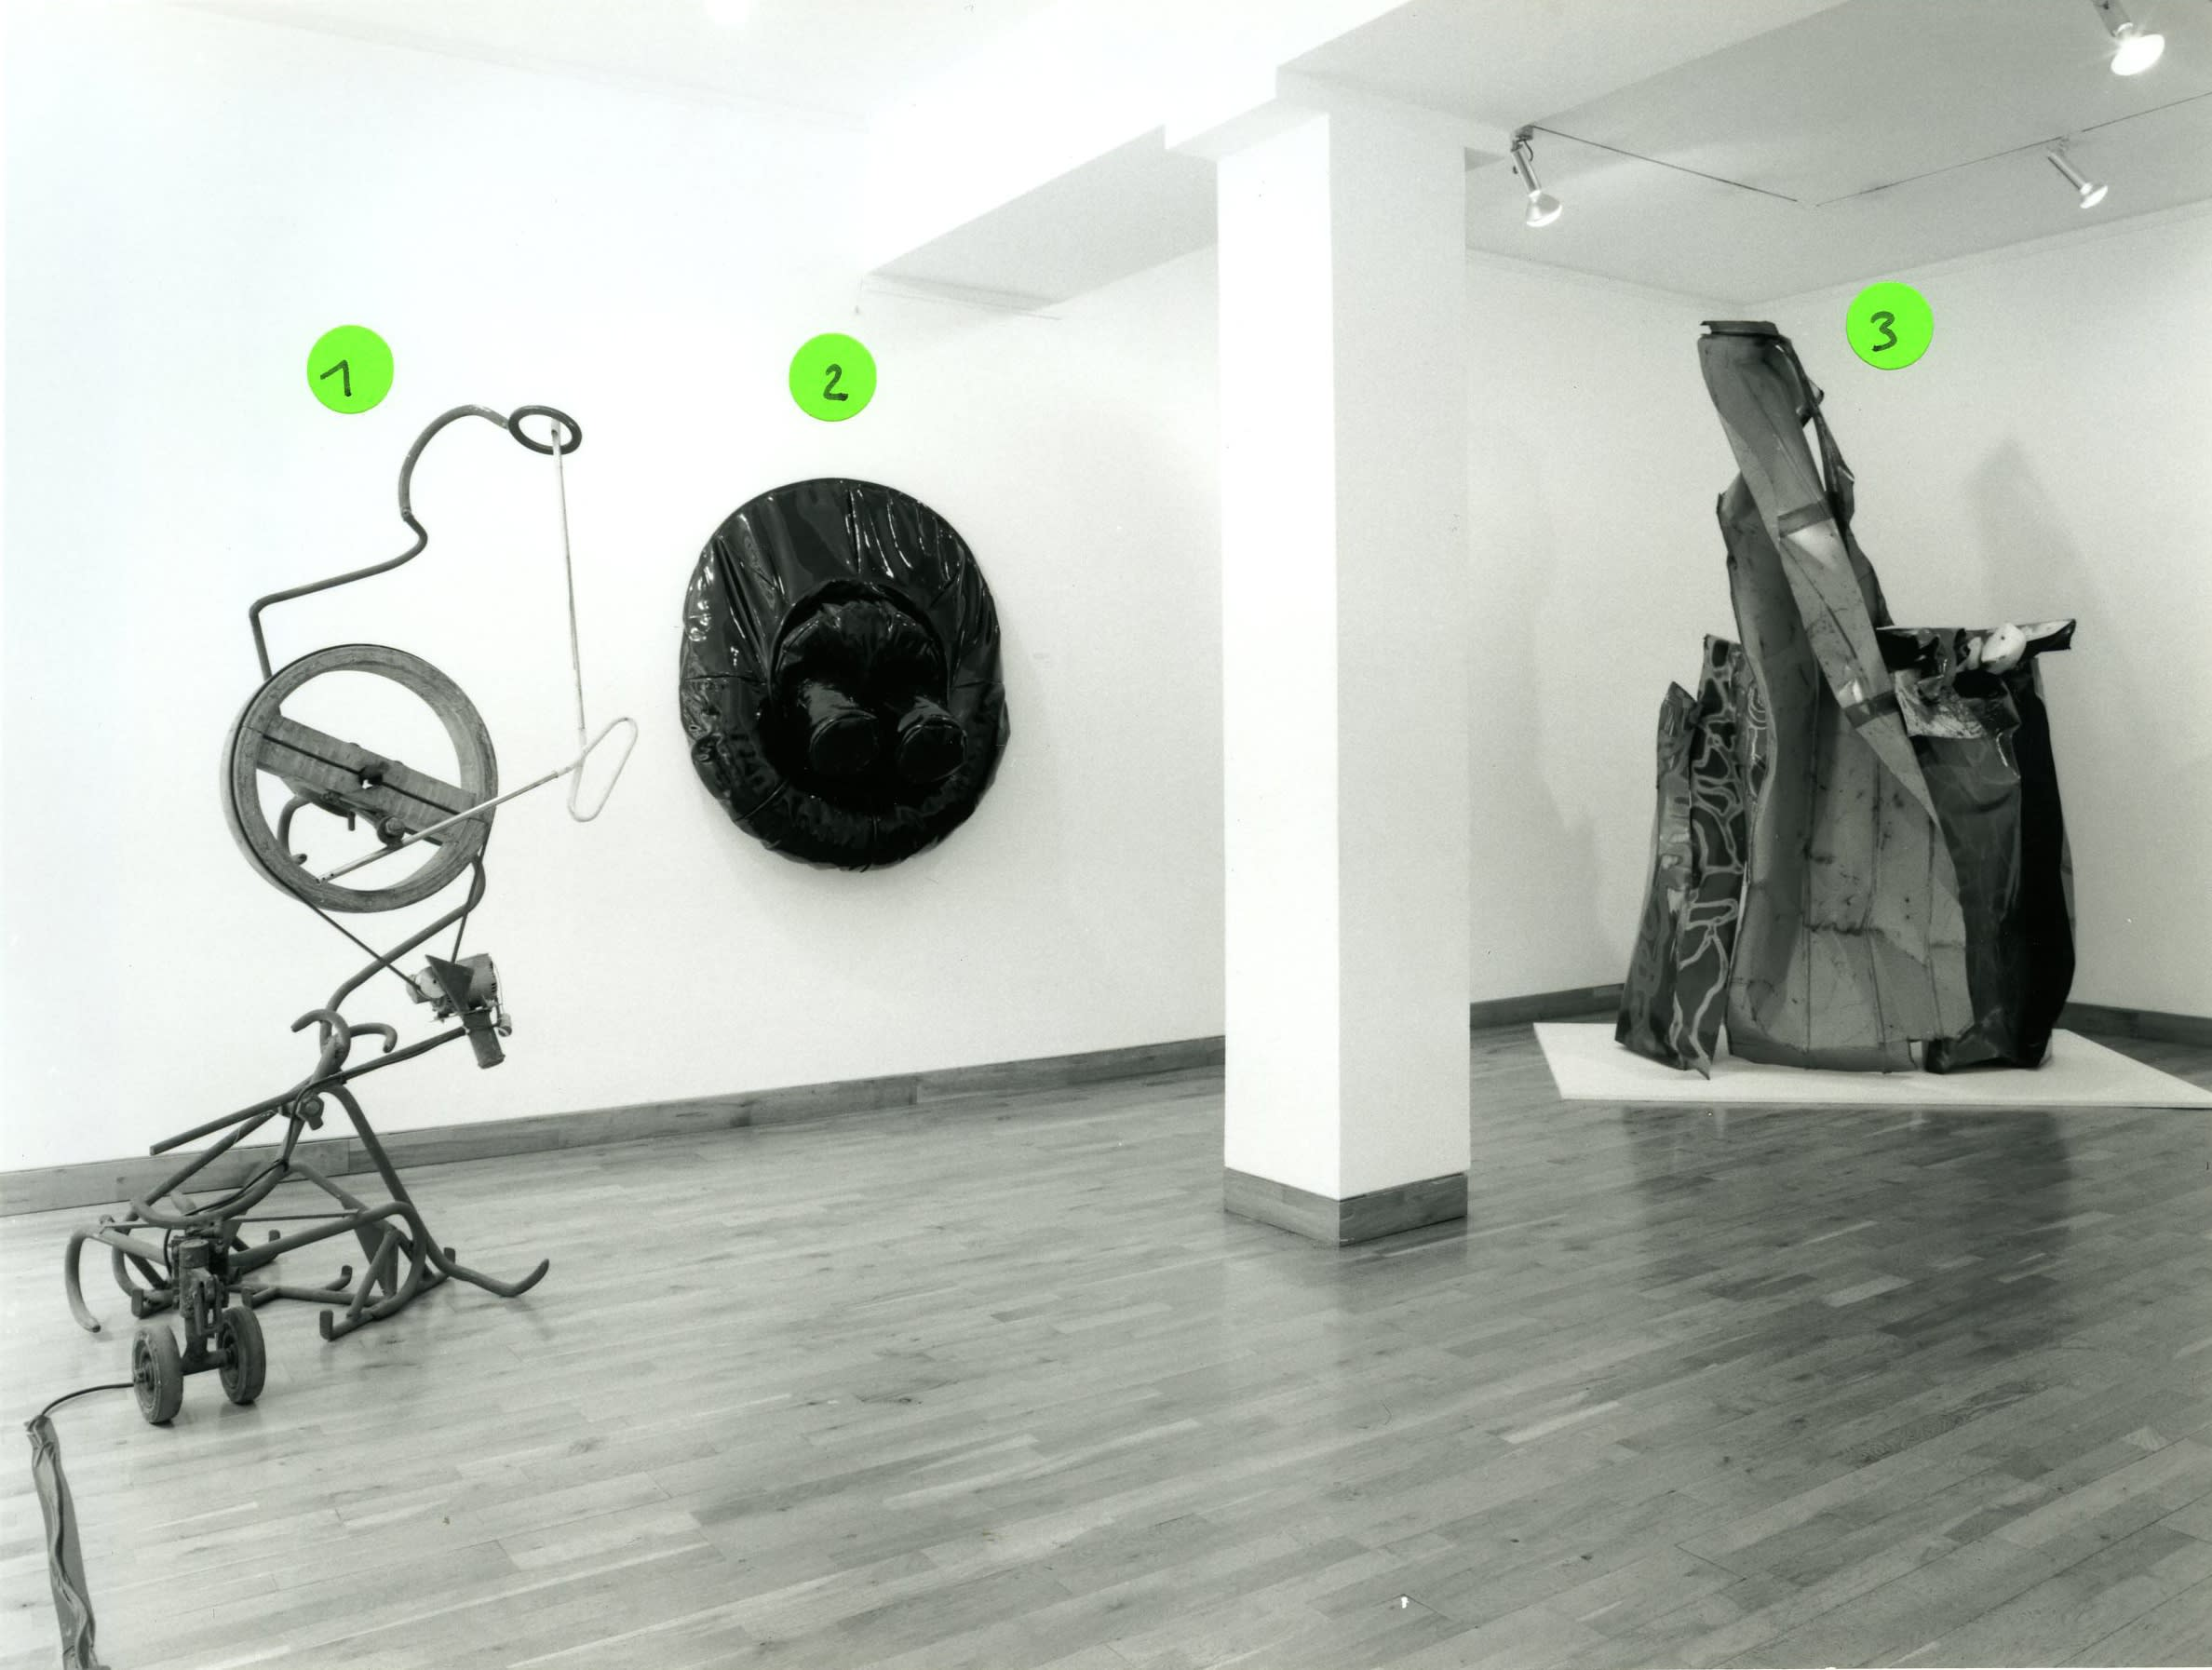 """<span class=""""link fancybox-details-link""""><a href=""""/exhibitions/171/works/image_standalone757/"""">View Detail Page</a></span><p>85 YEARS OF SCULPTURE 